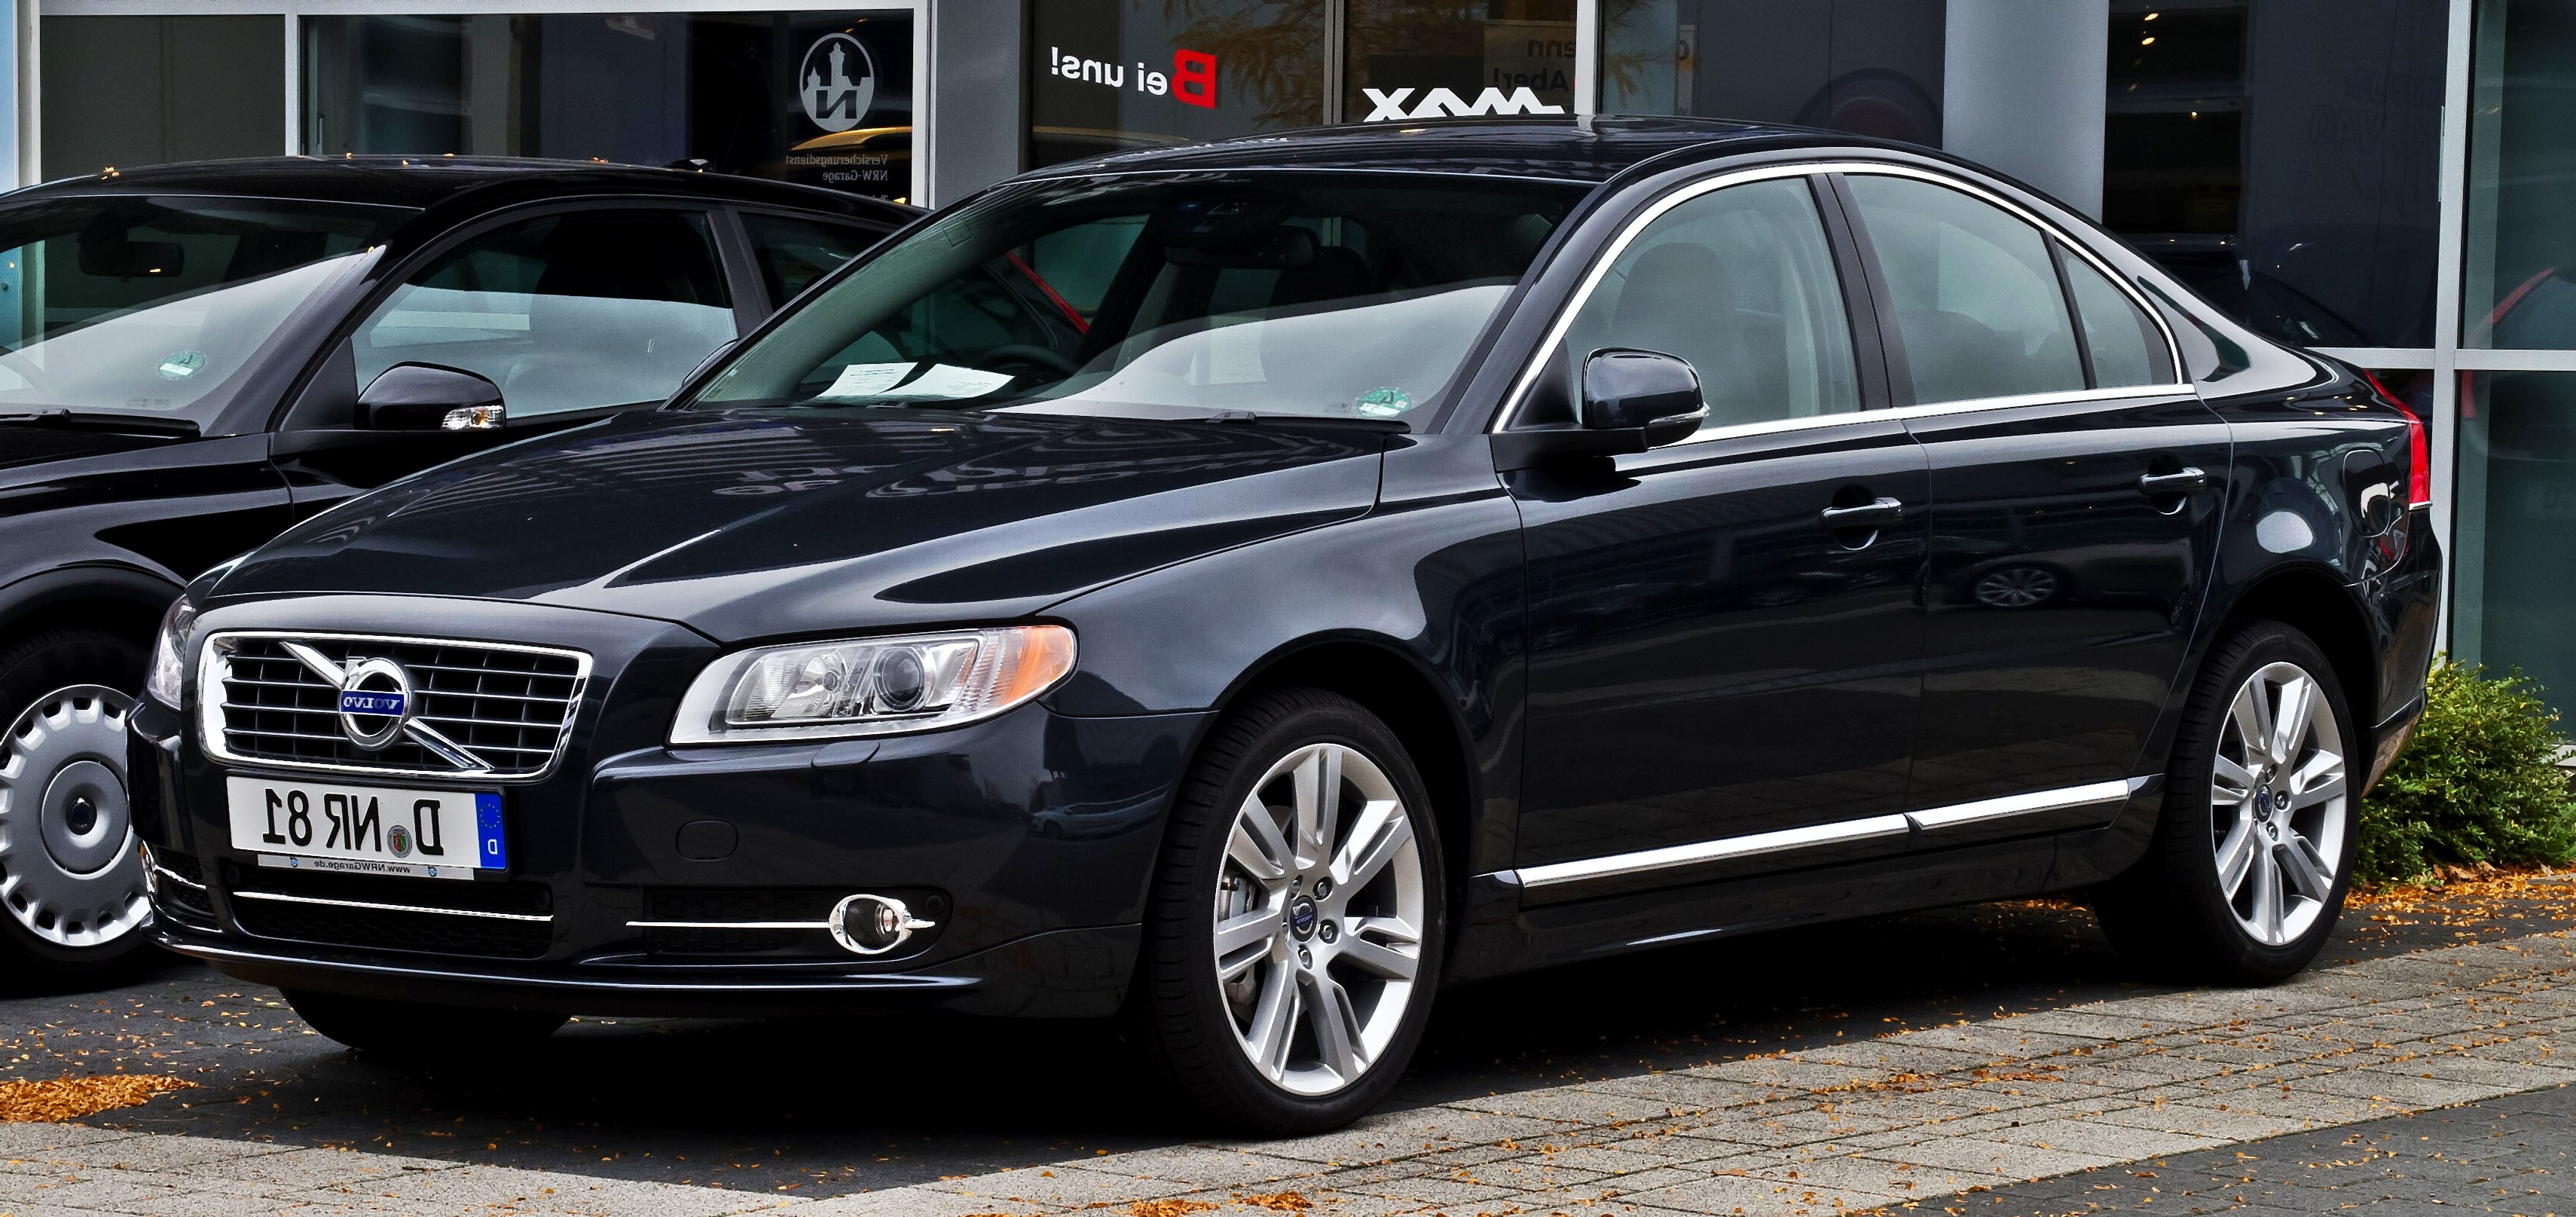 Download all volvo s80 2015 pictures 2 8 mb